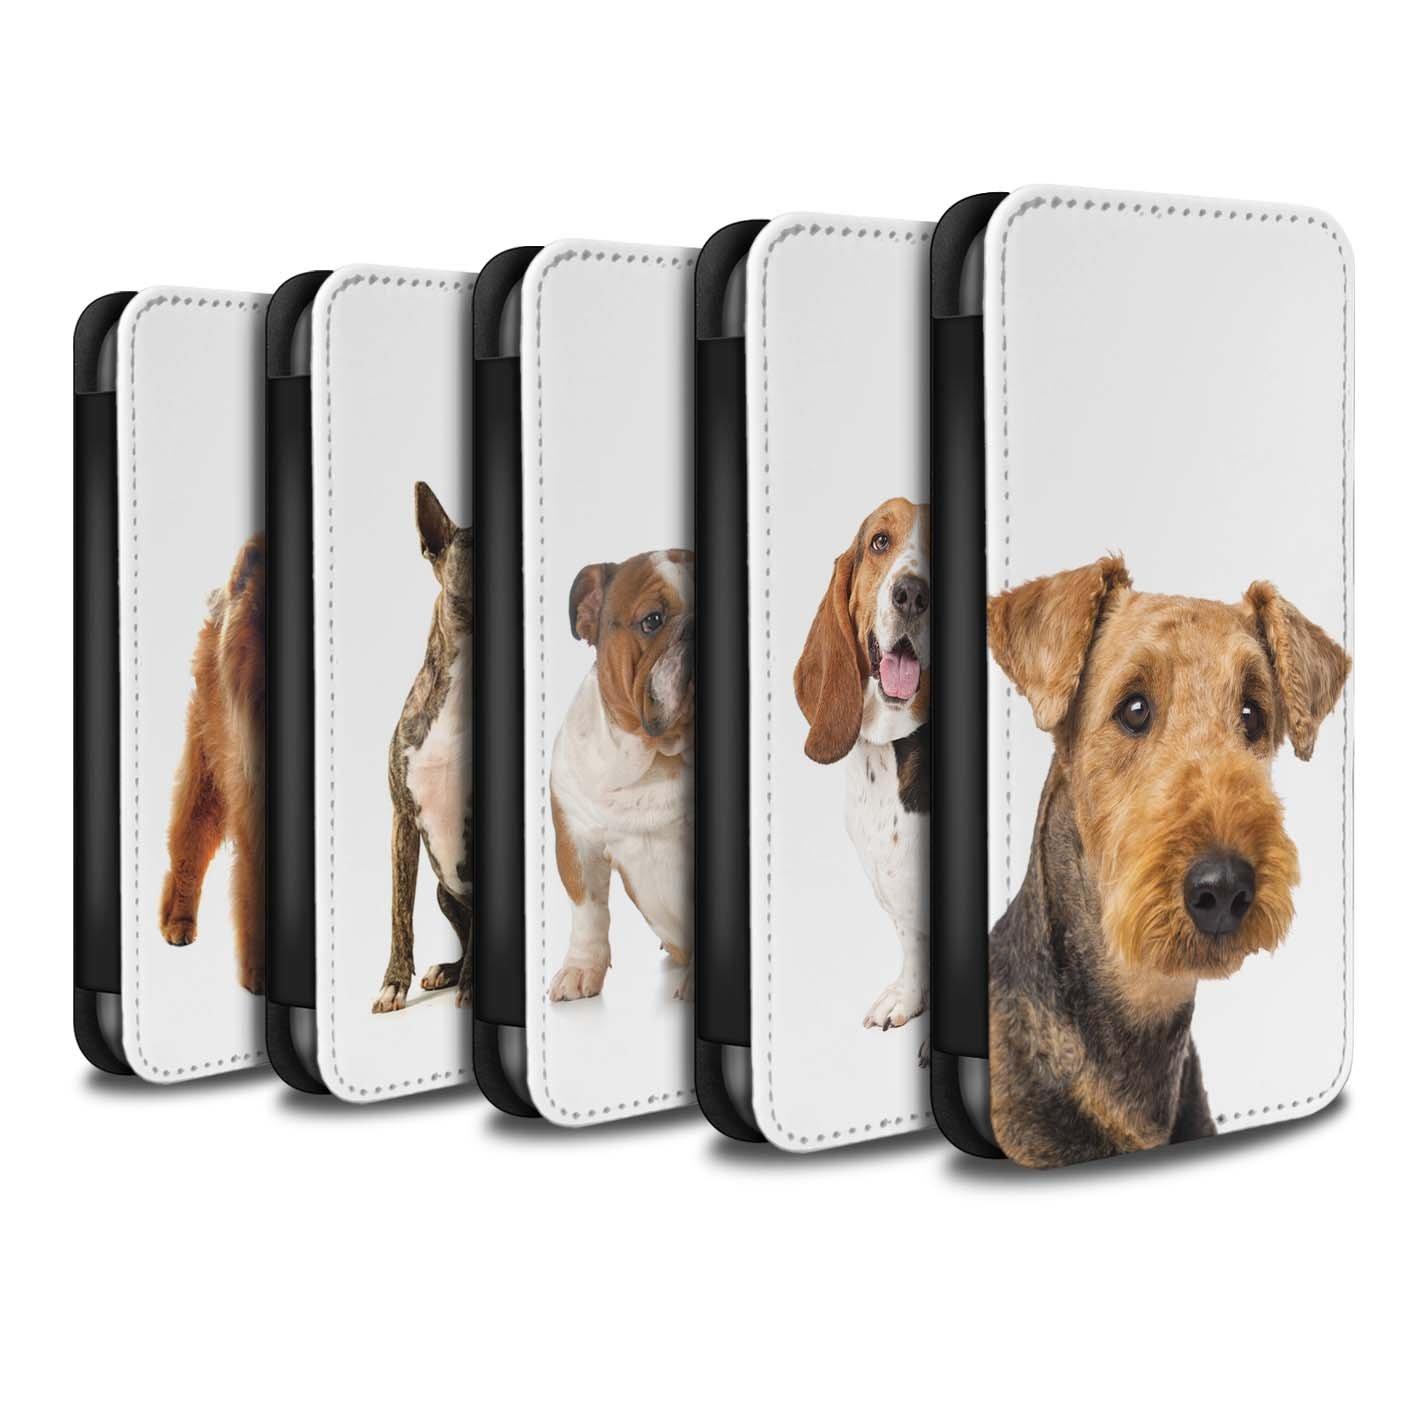 STUFF4 PU Leather Wallet Flip Case/Cover for Apple iPhone 8 / Pack 12pcs Design / Dog Breeds Collection